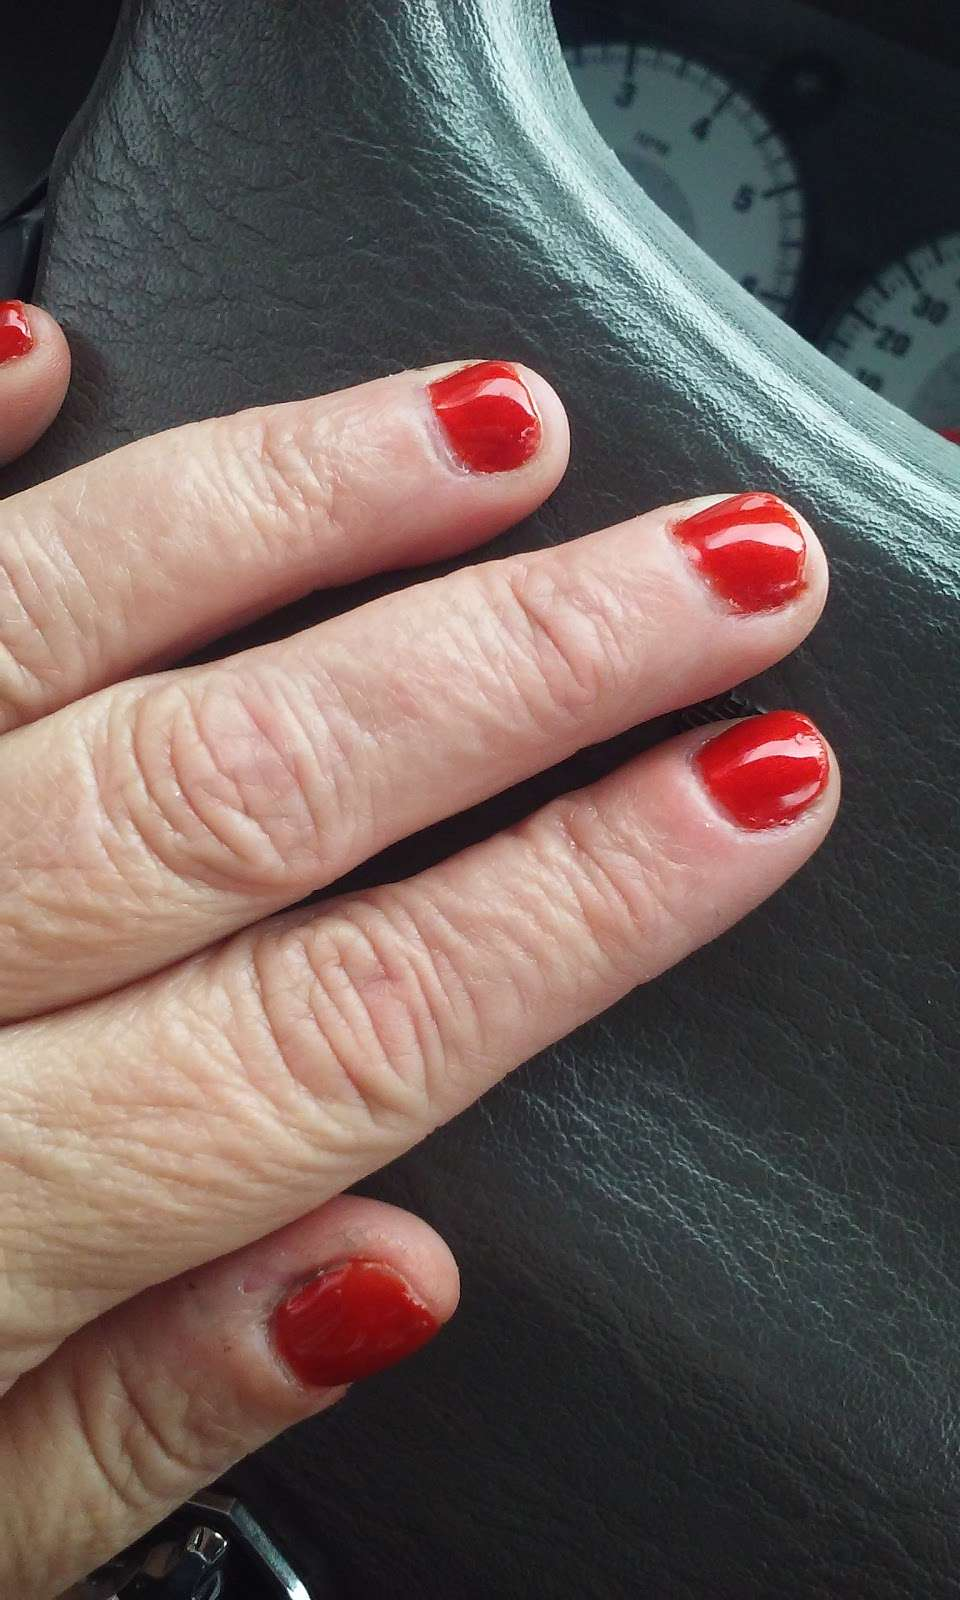 Pedi Lounge Nail Salon & Spa - hair care  | Photo 6 of 10 | Address: 1827 N Madison Ave Suite B, Anderson, IN 46011, USA | Phone: (765) 393-0015